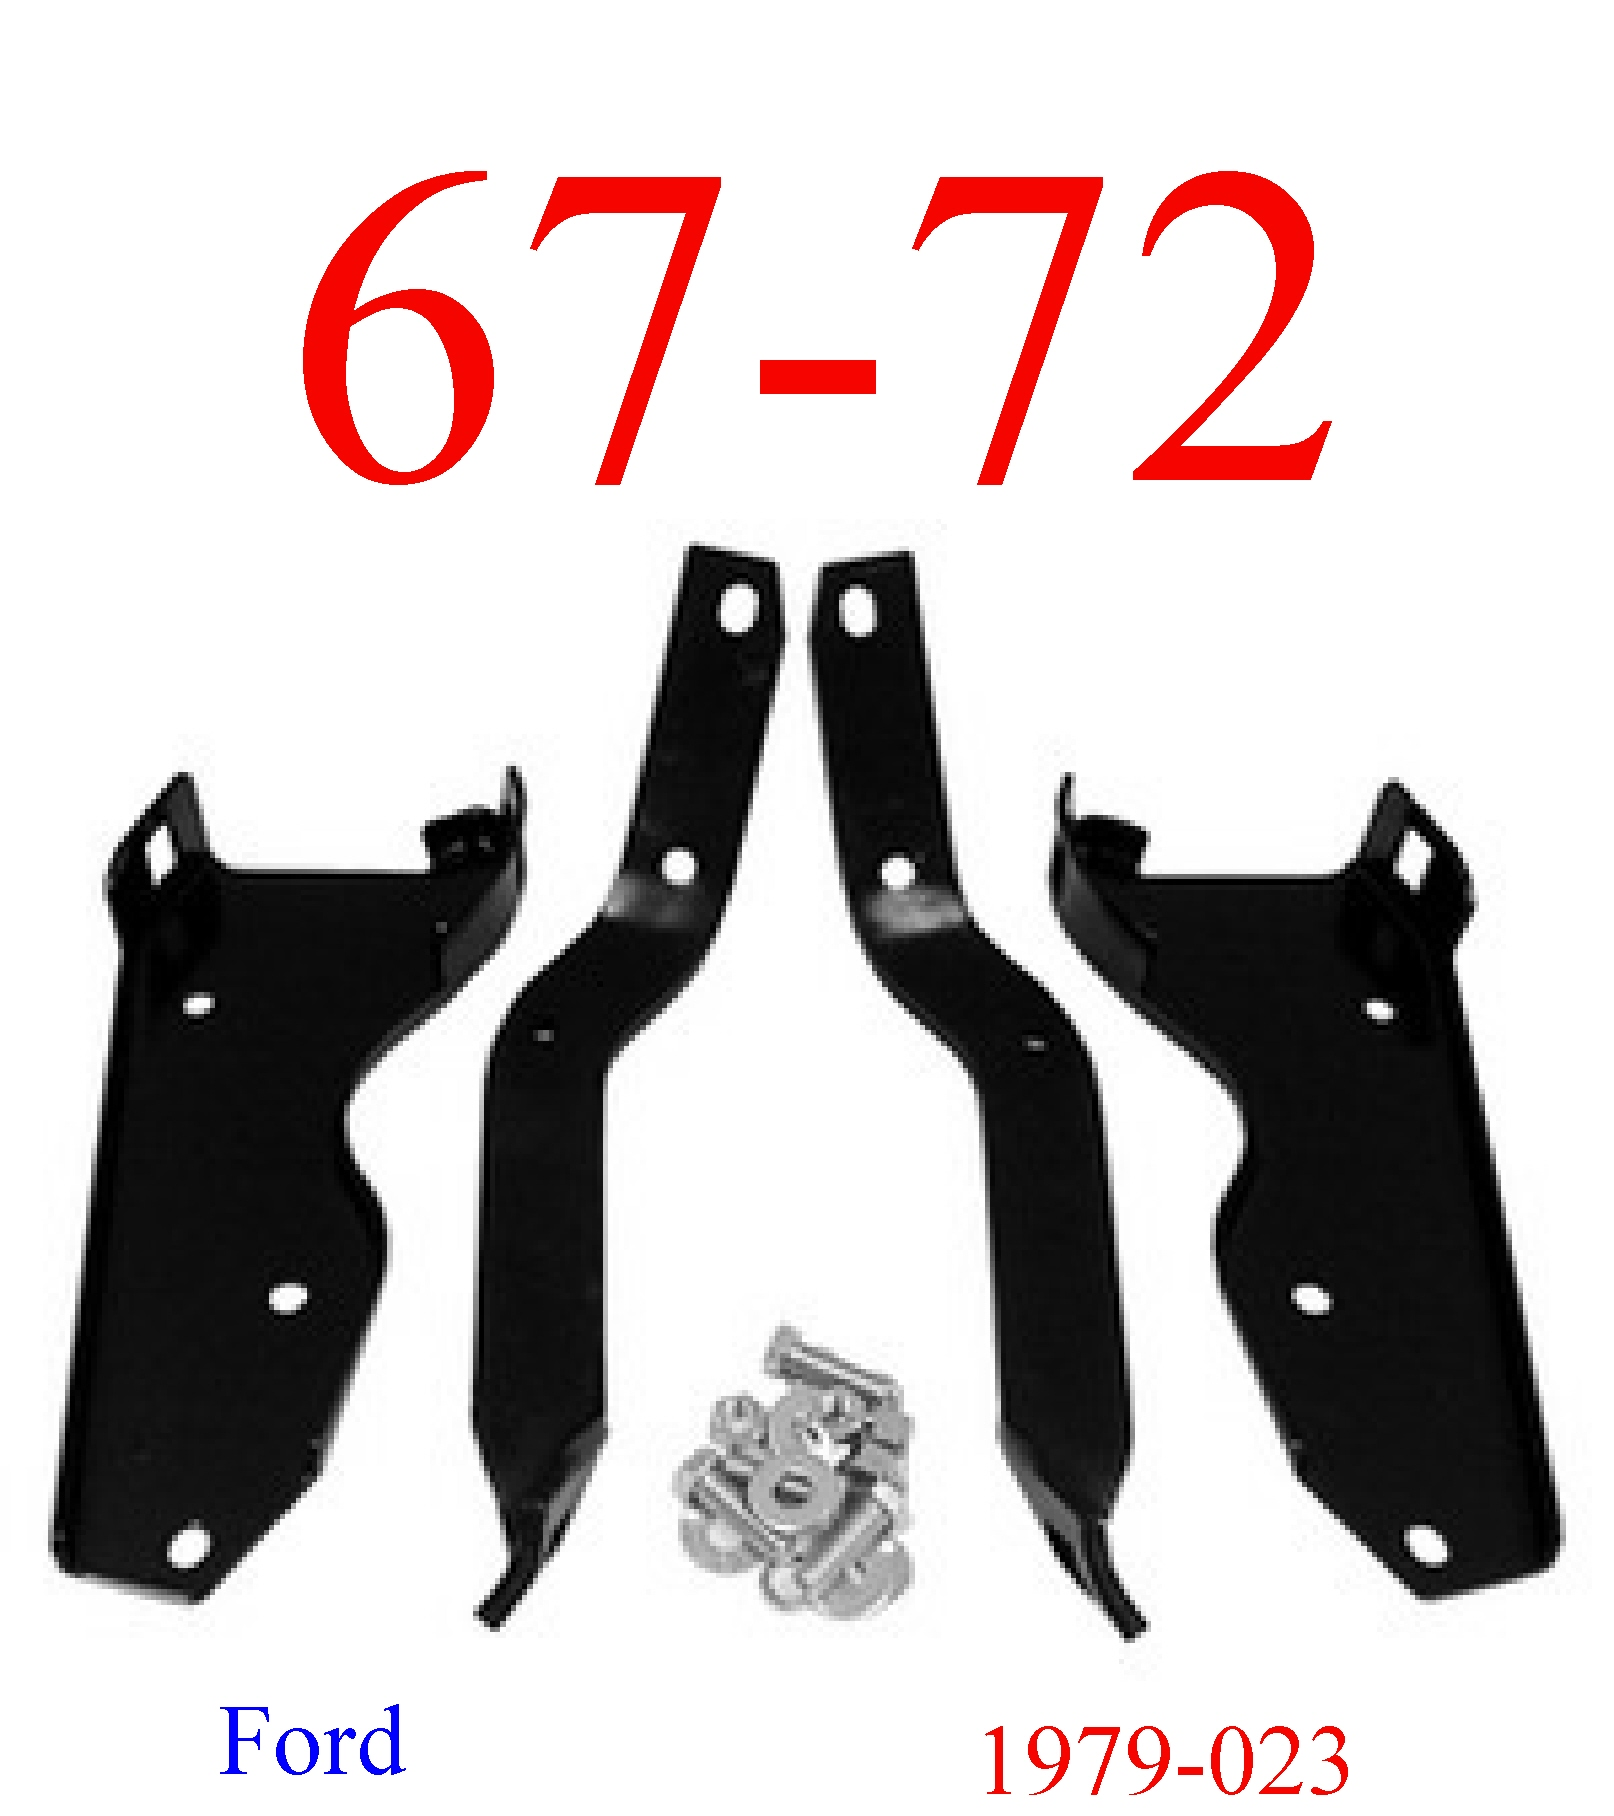 67-72 Ford Truck Rear Bumper Bracket & Bolt Kit